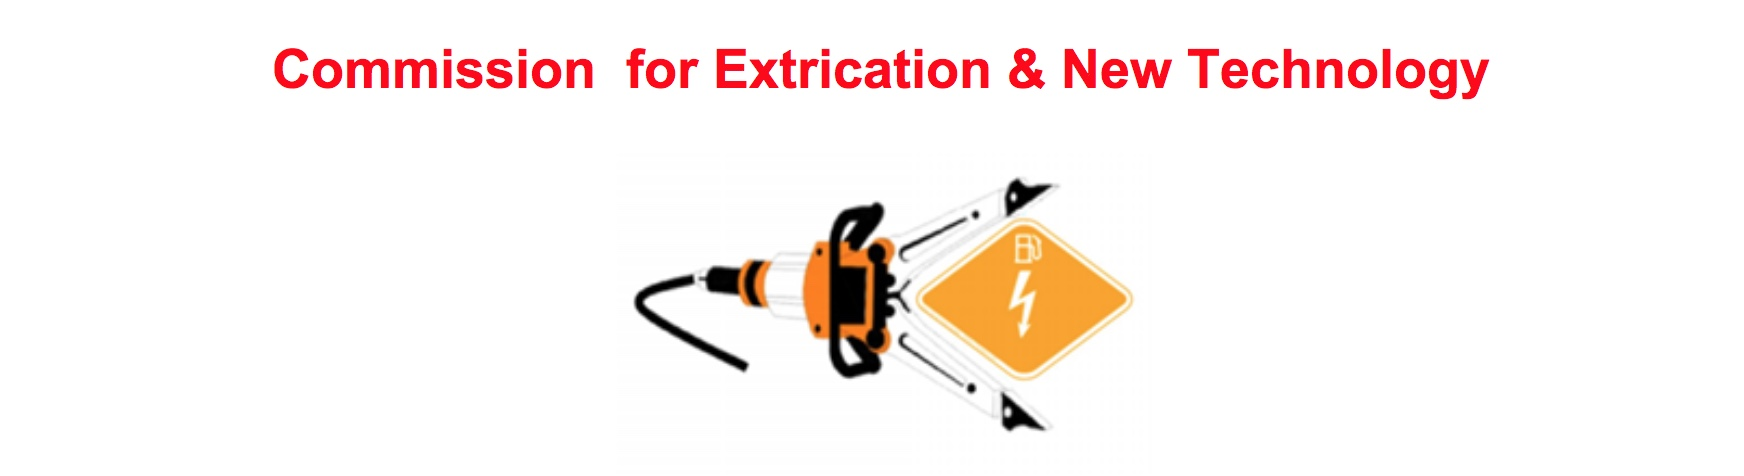 Extrication Commission banner